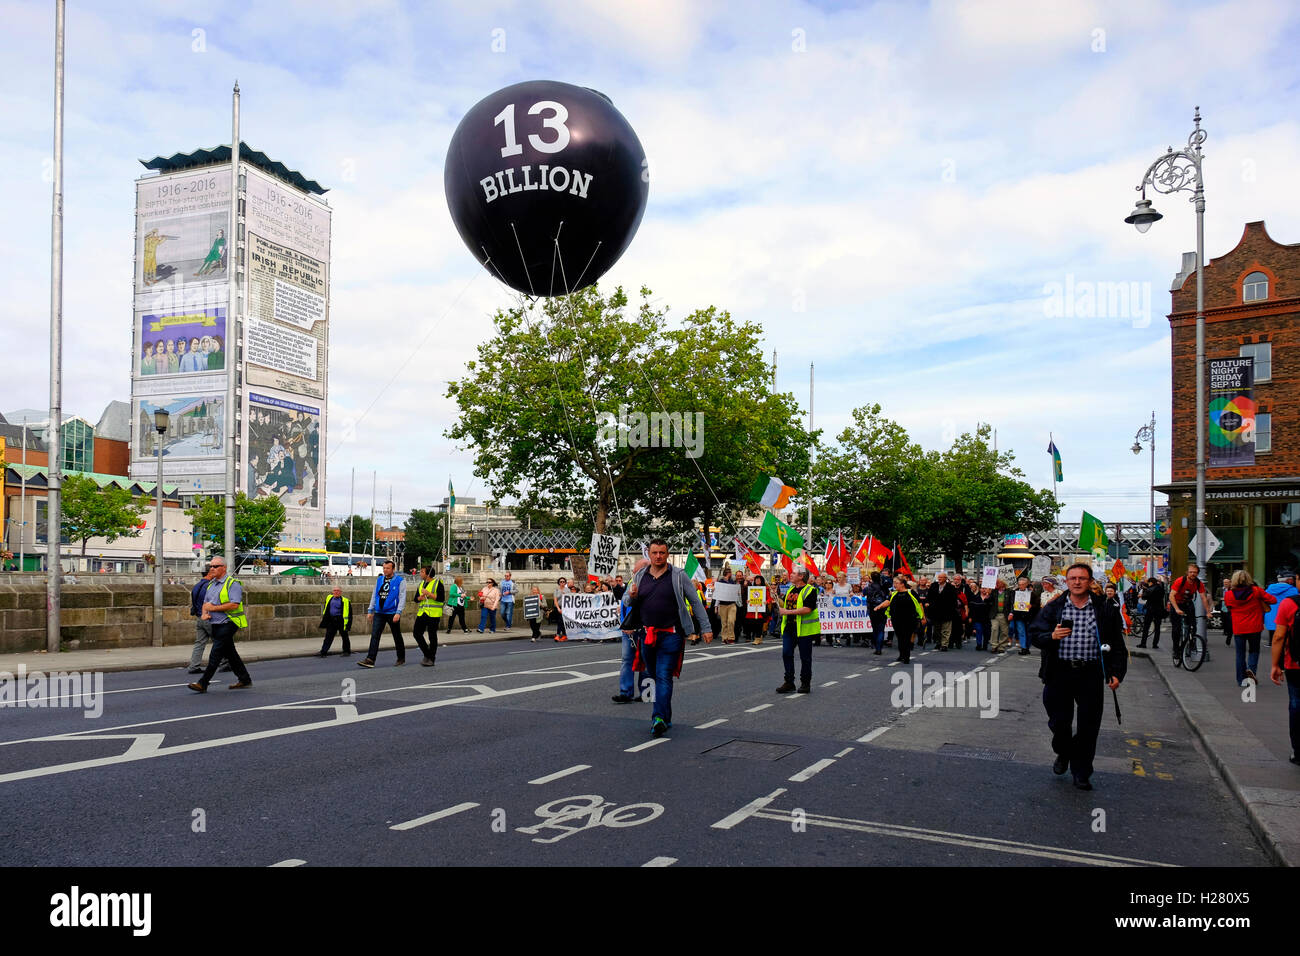 Anti-Water charge protestors in Dublin with giant Balloon representing 13 Billion Euro Tax avoidance by Apple Computers - Stock Image